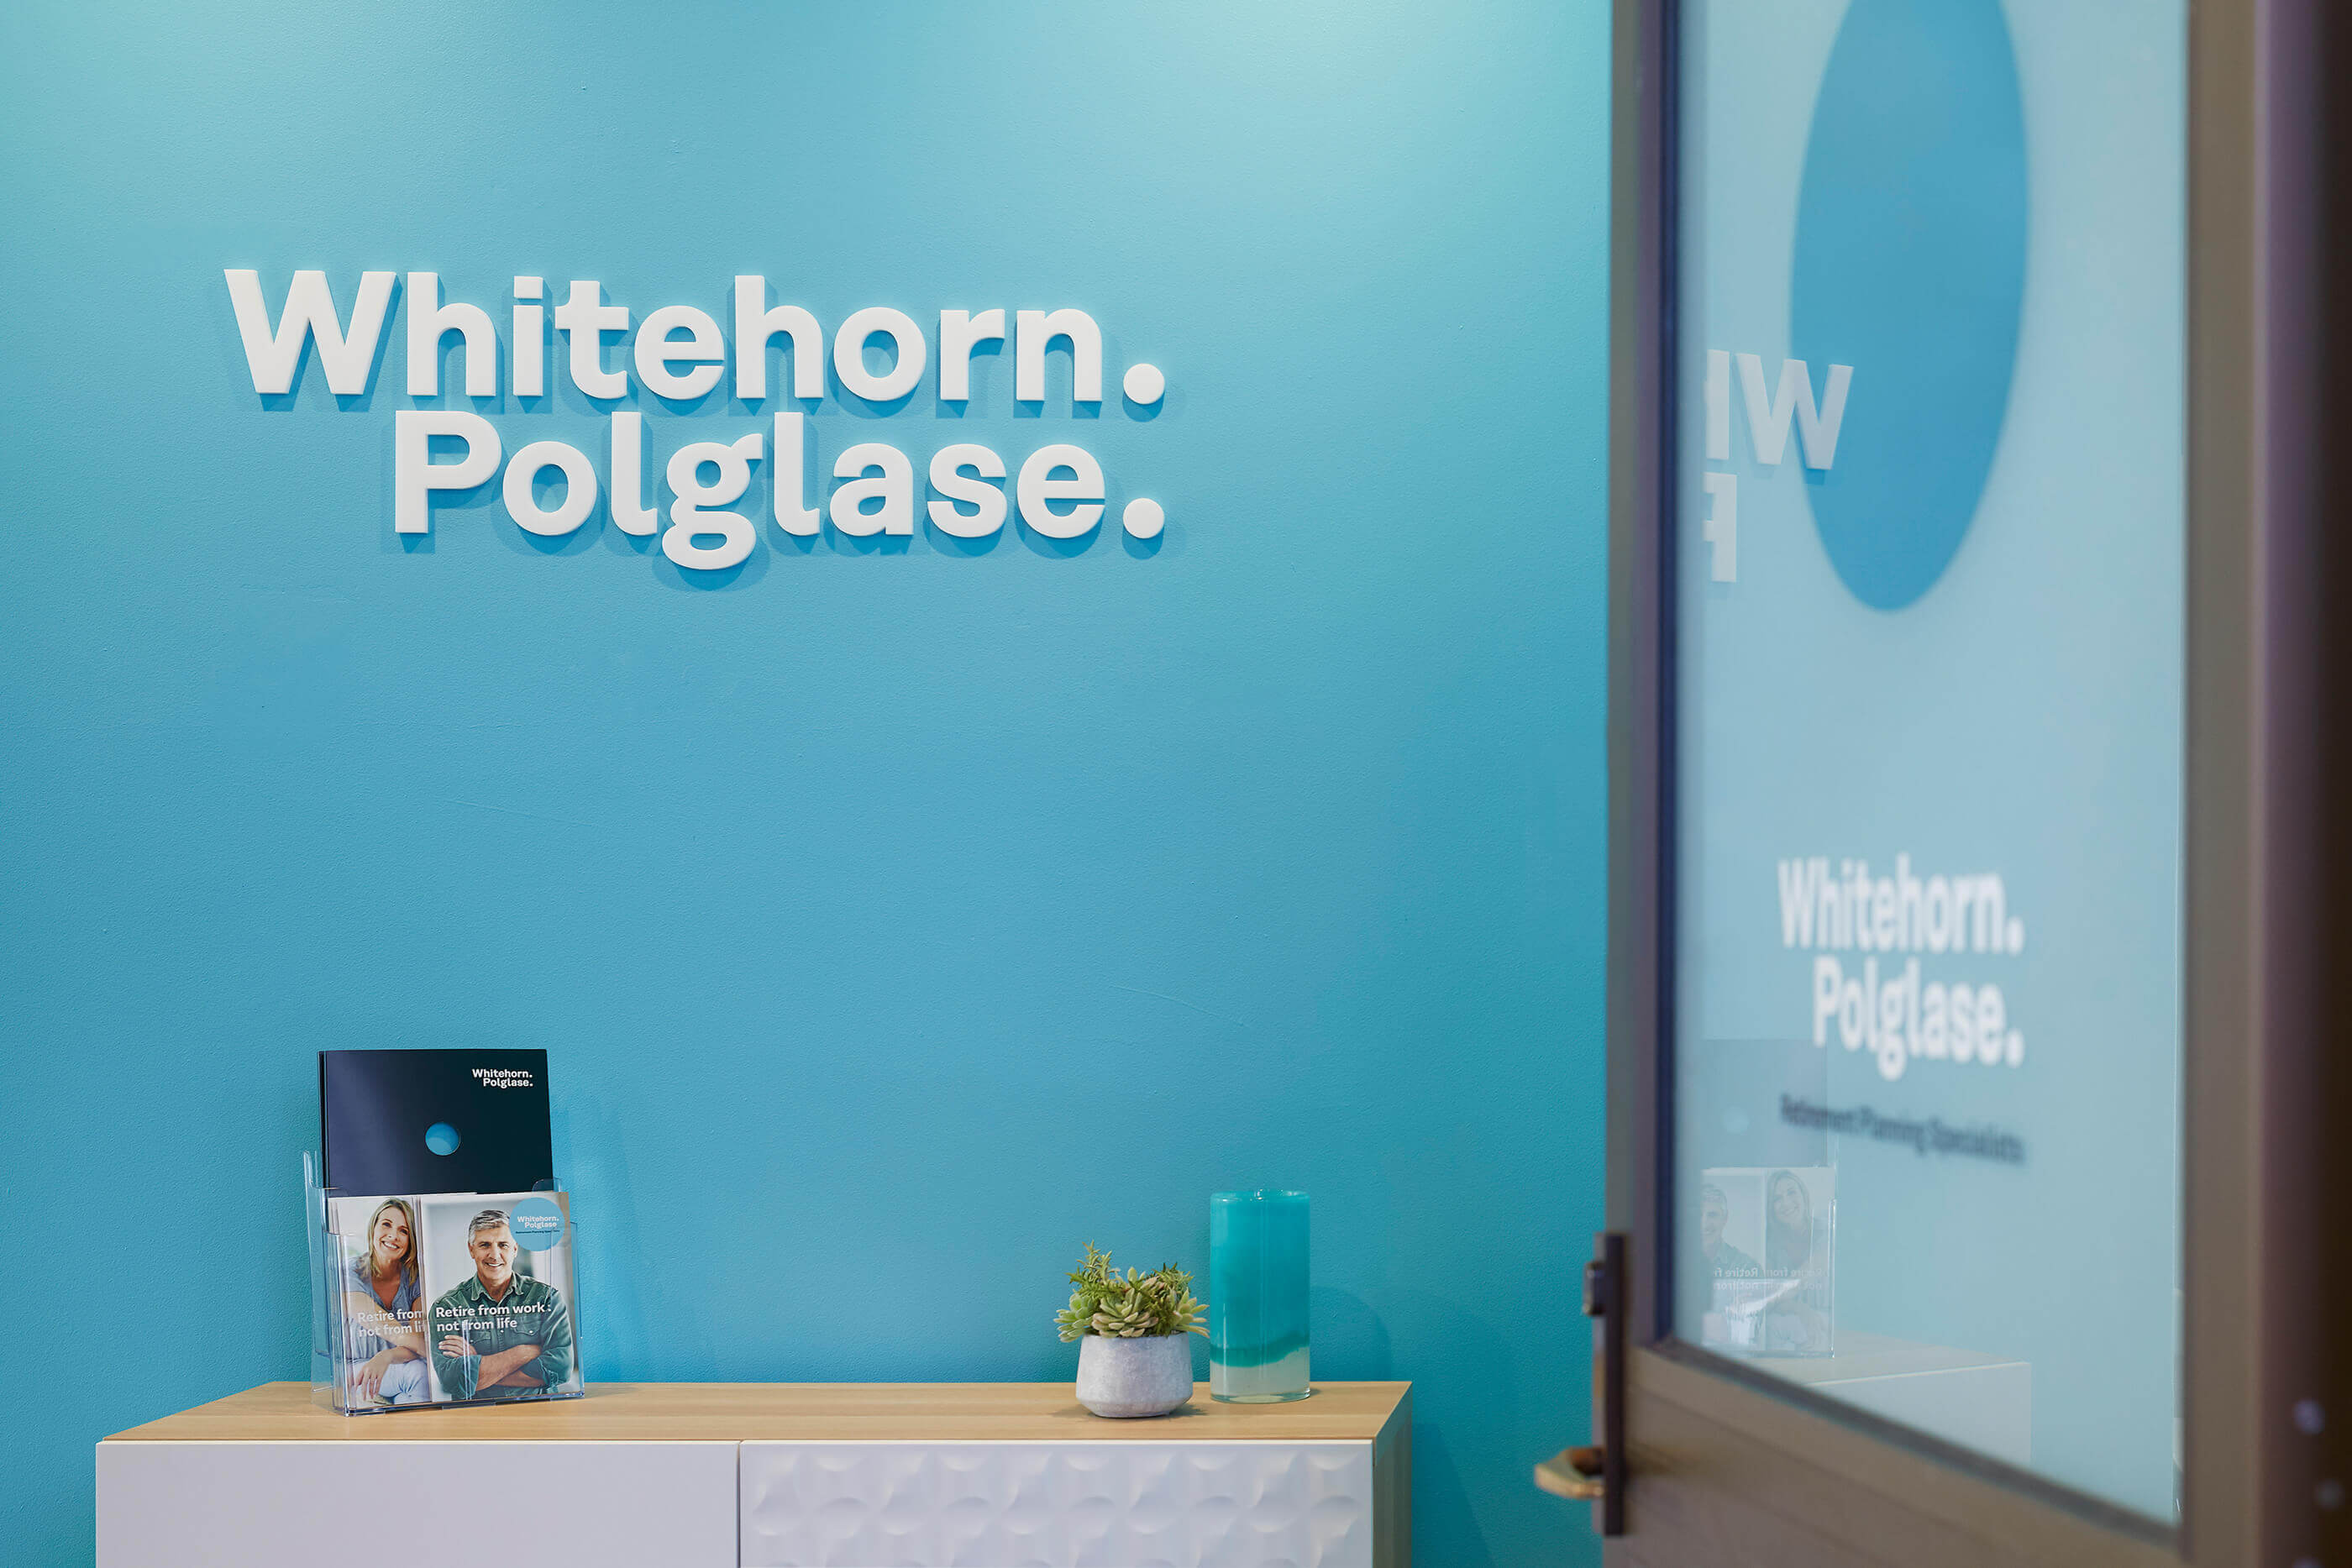 whitehorn_polglase_office_5